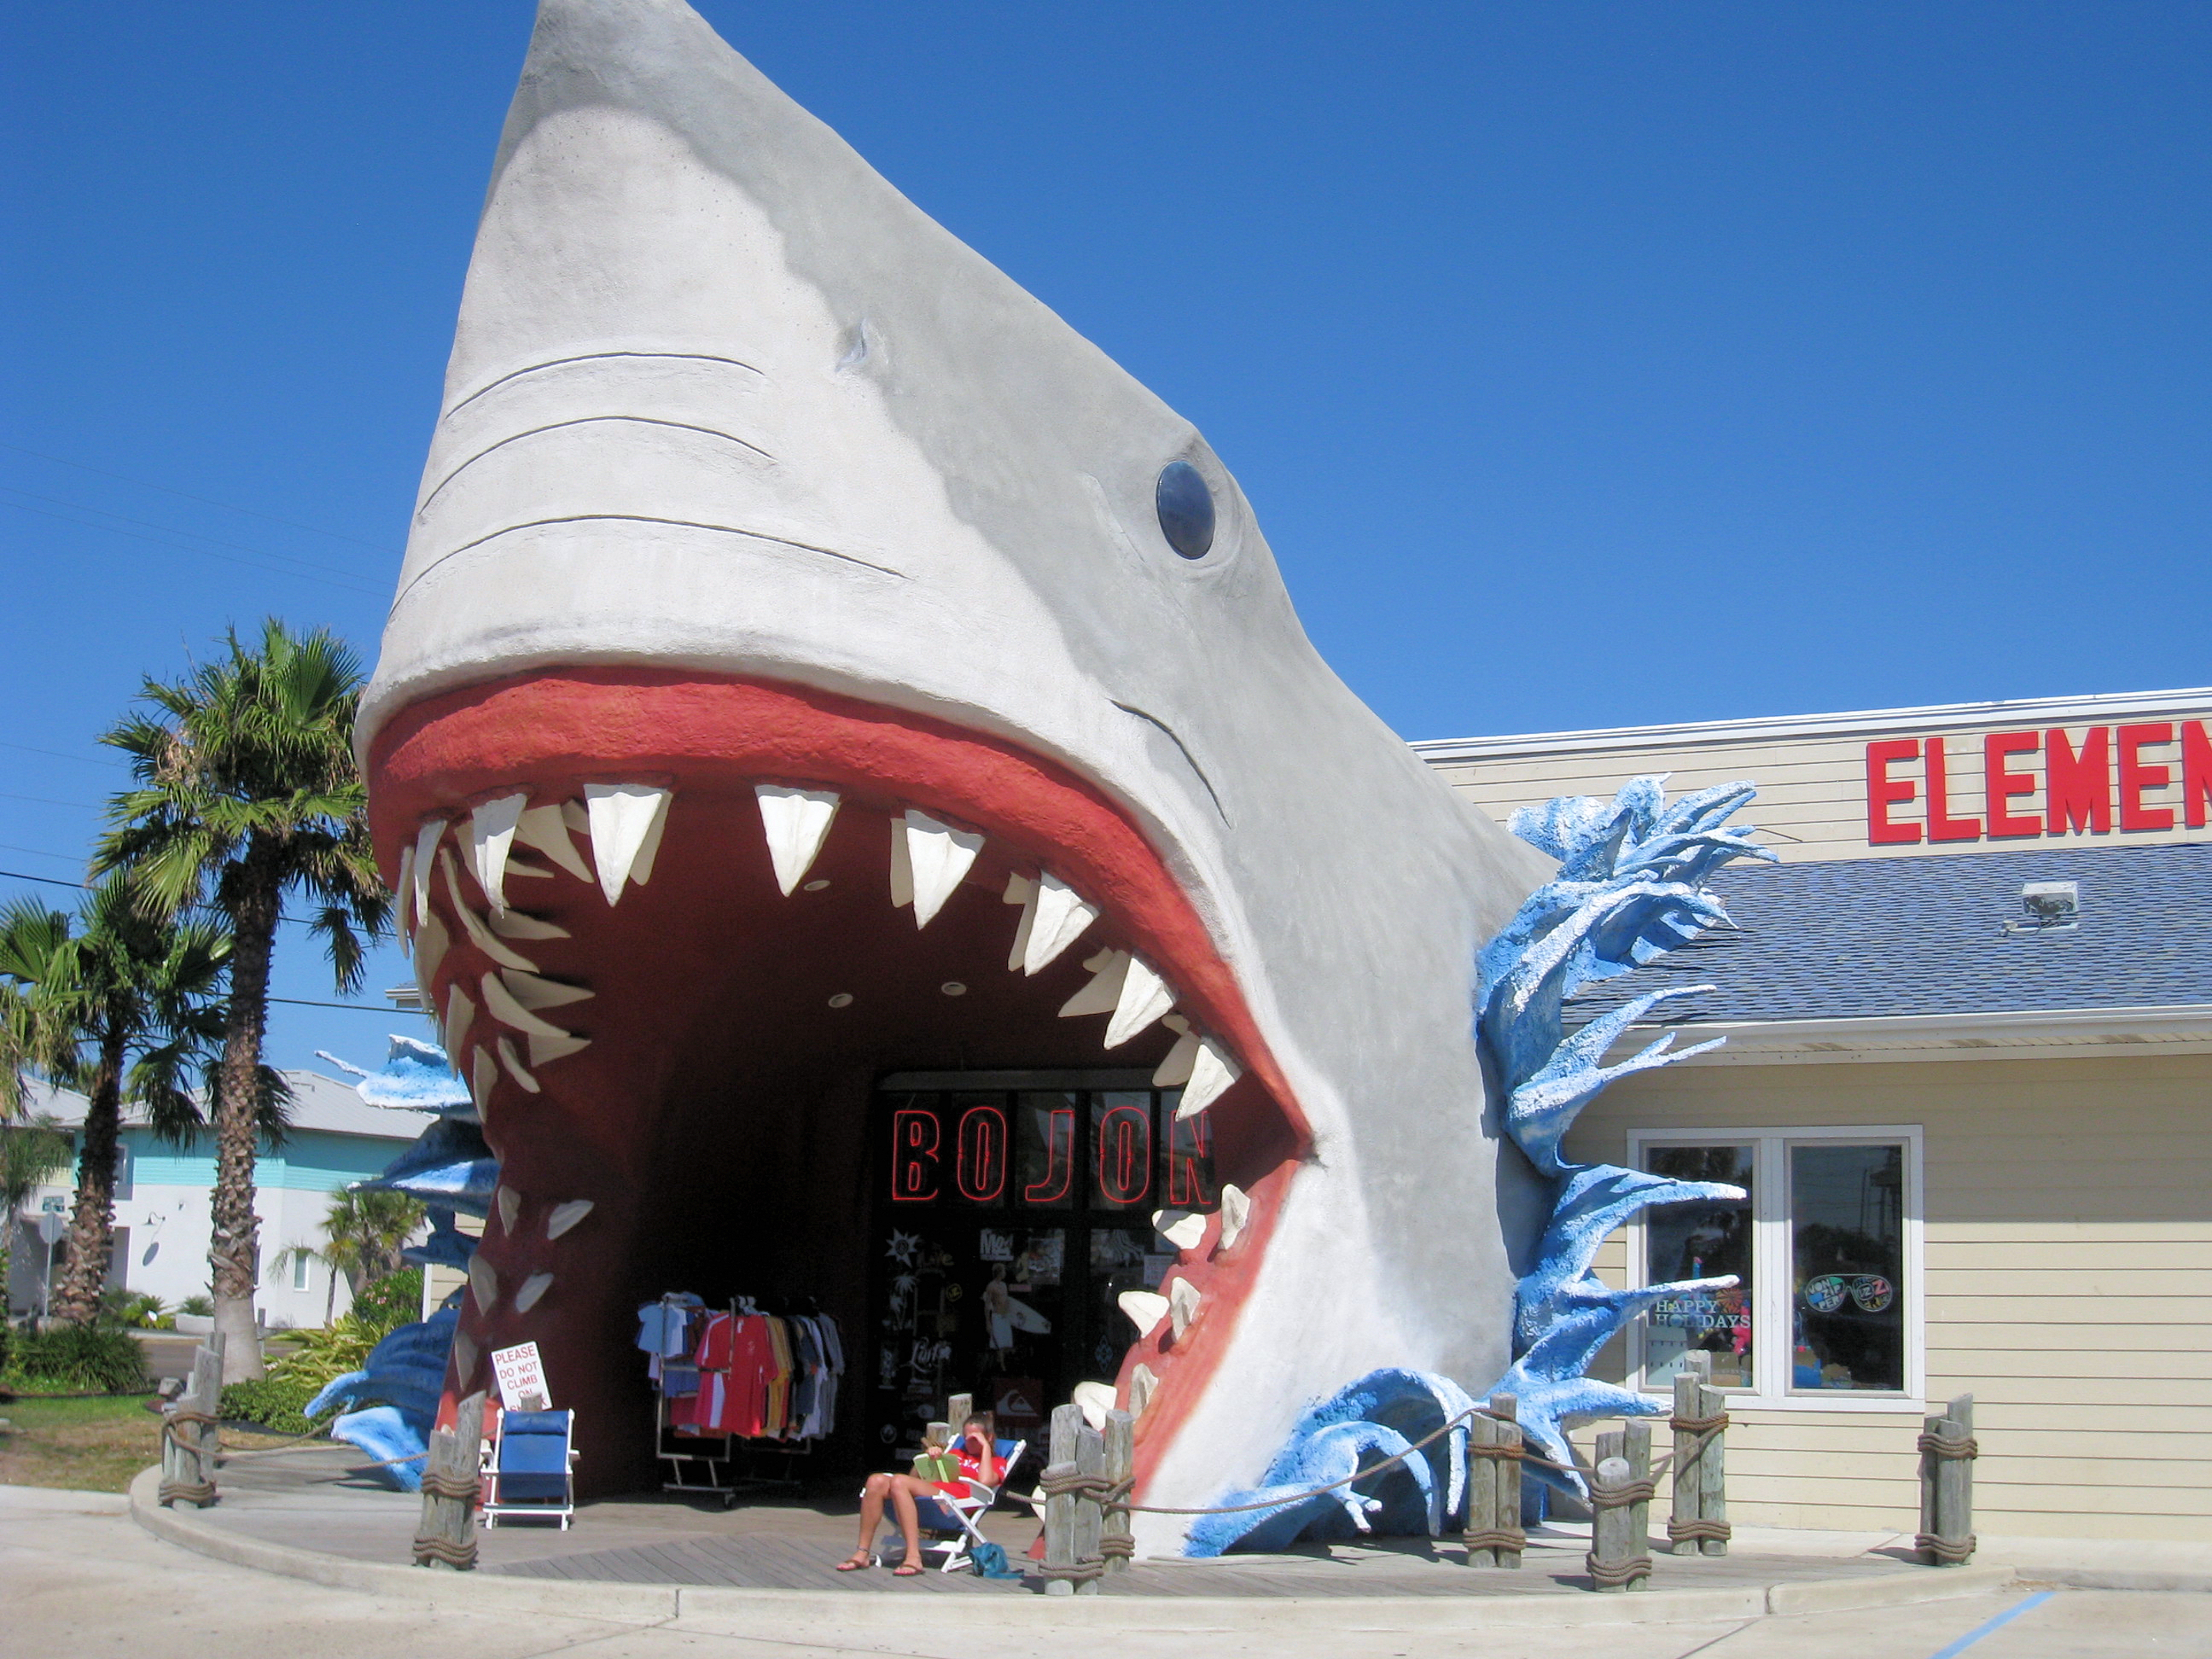 Another Giant Shark Entrance!